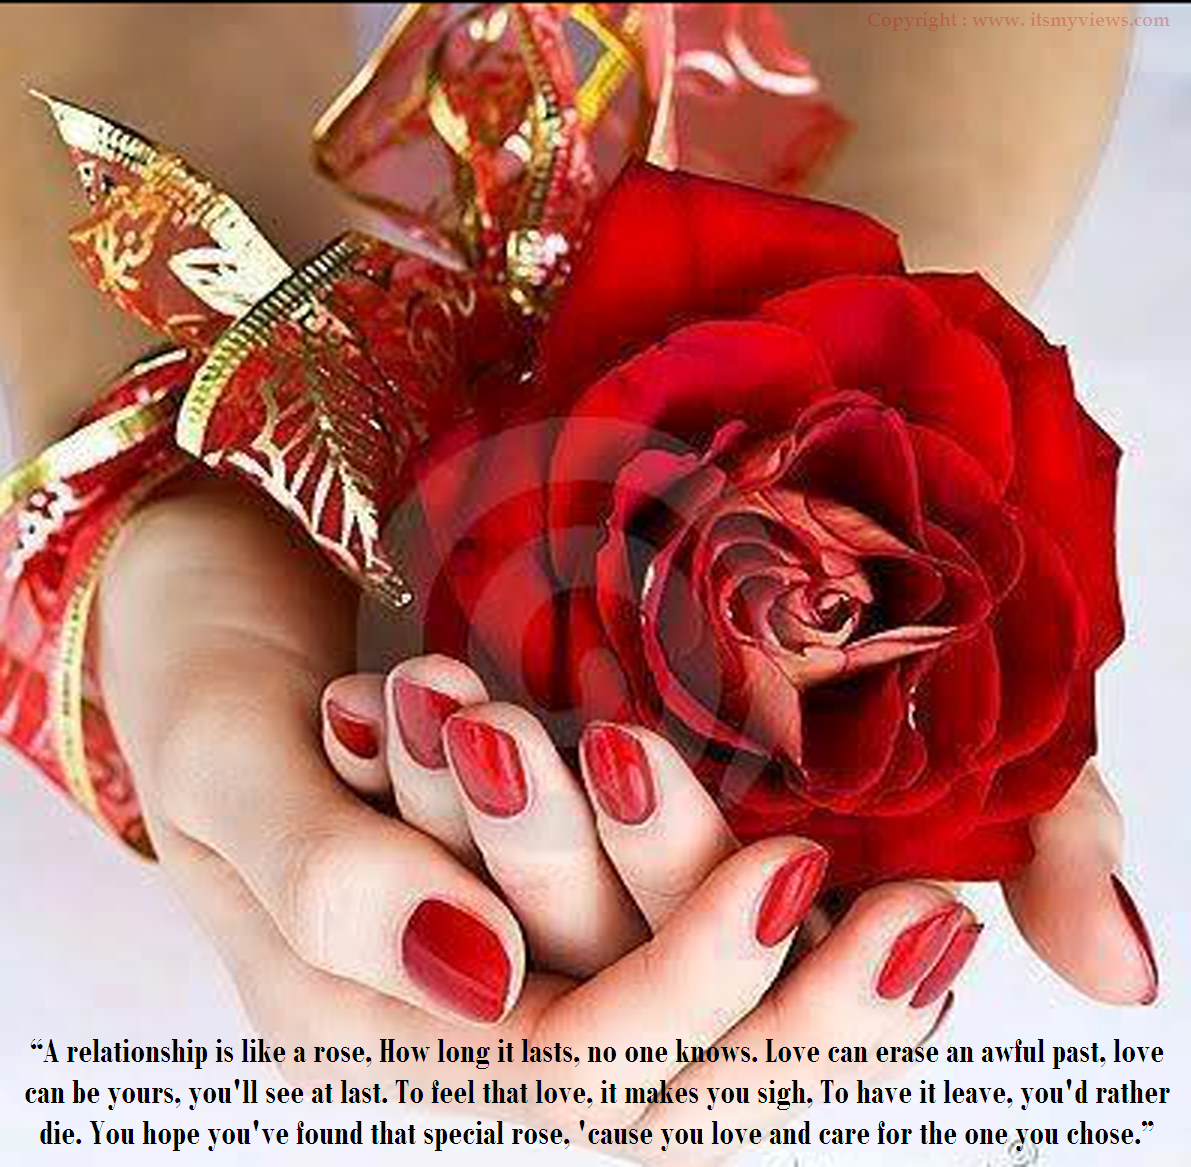 Red Rose Wallpaper With Love Quotes Hindi Wallpapersimages Org